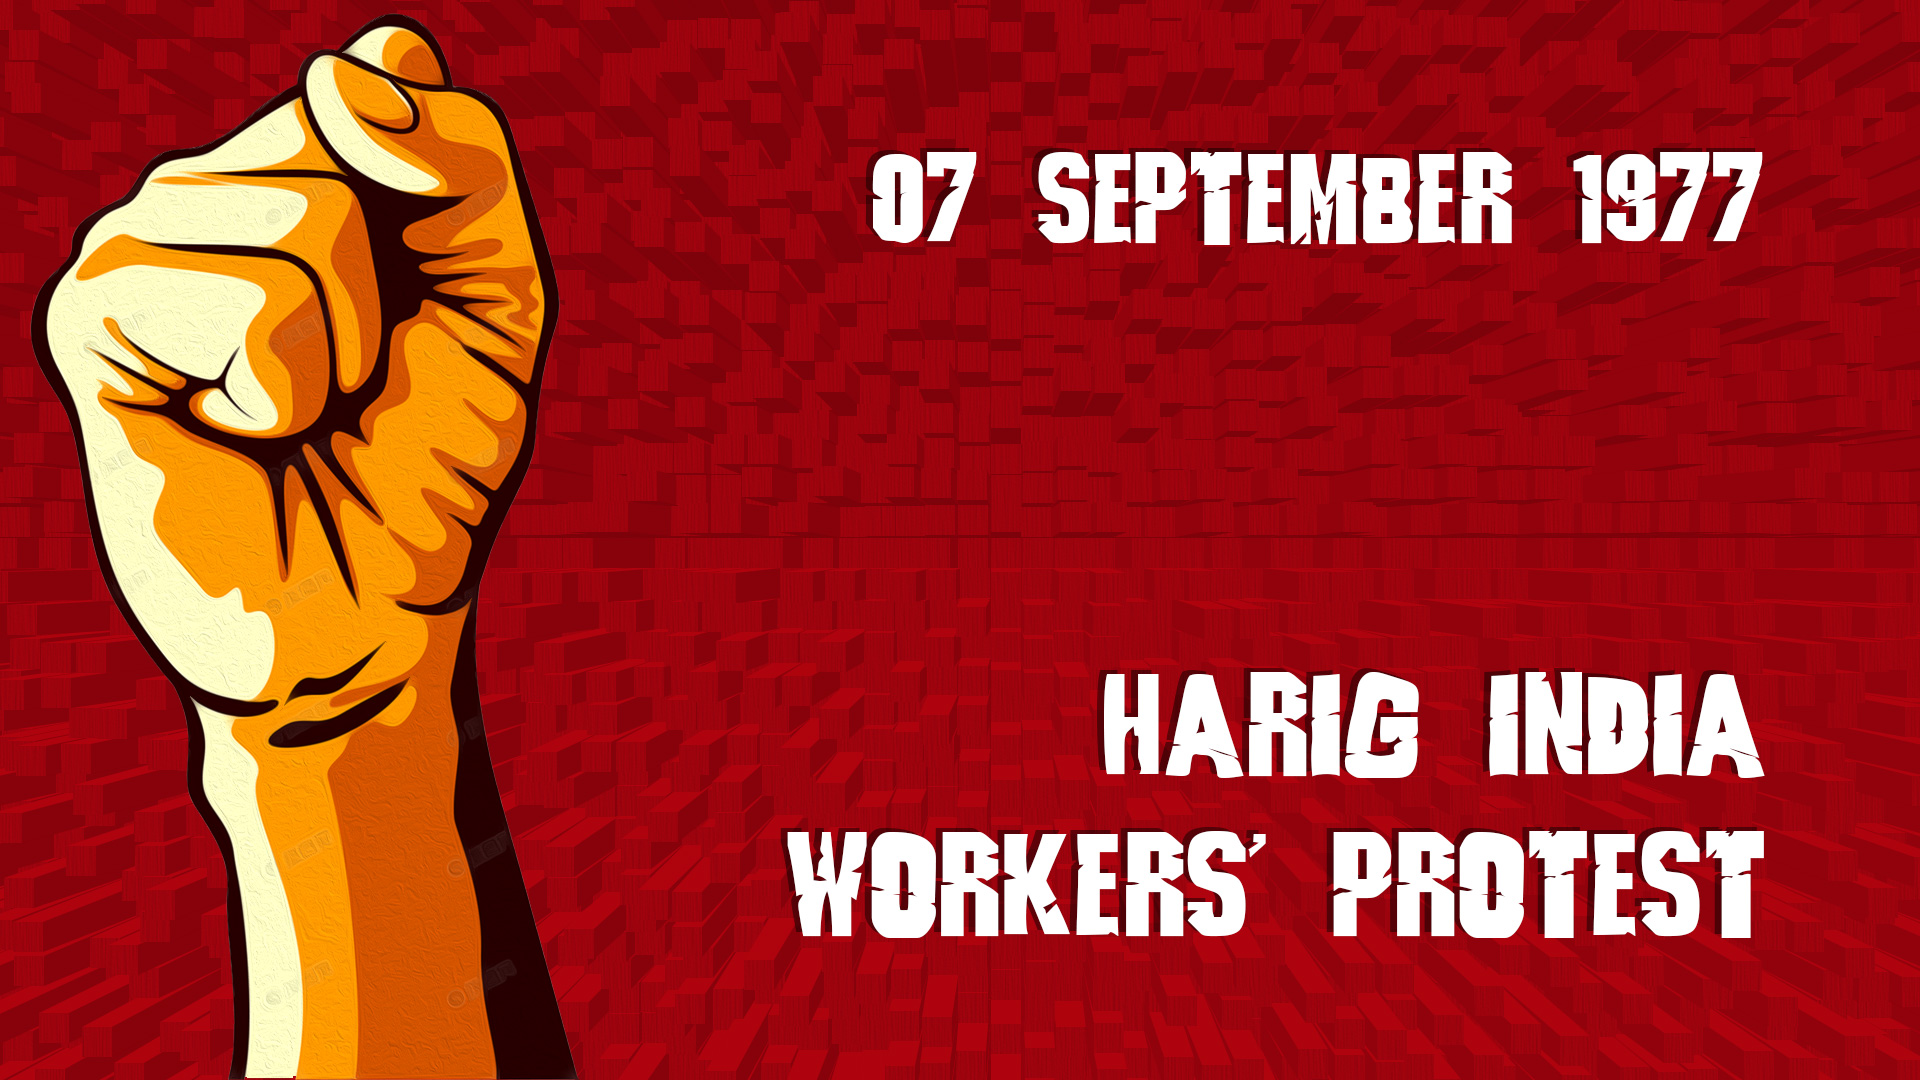 Harig India Workers' protest 7 september 1977